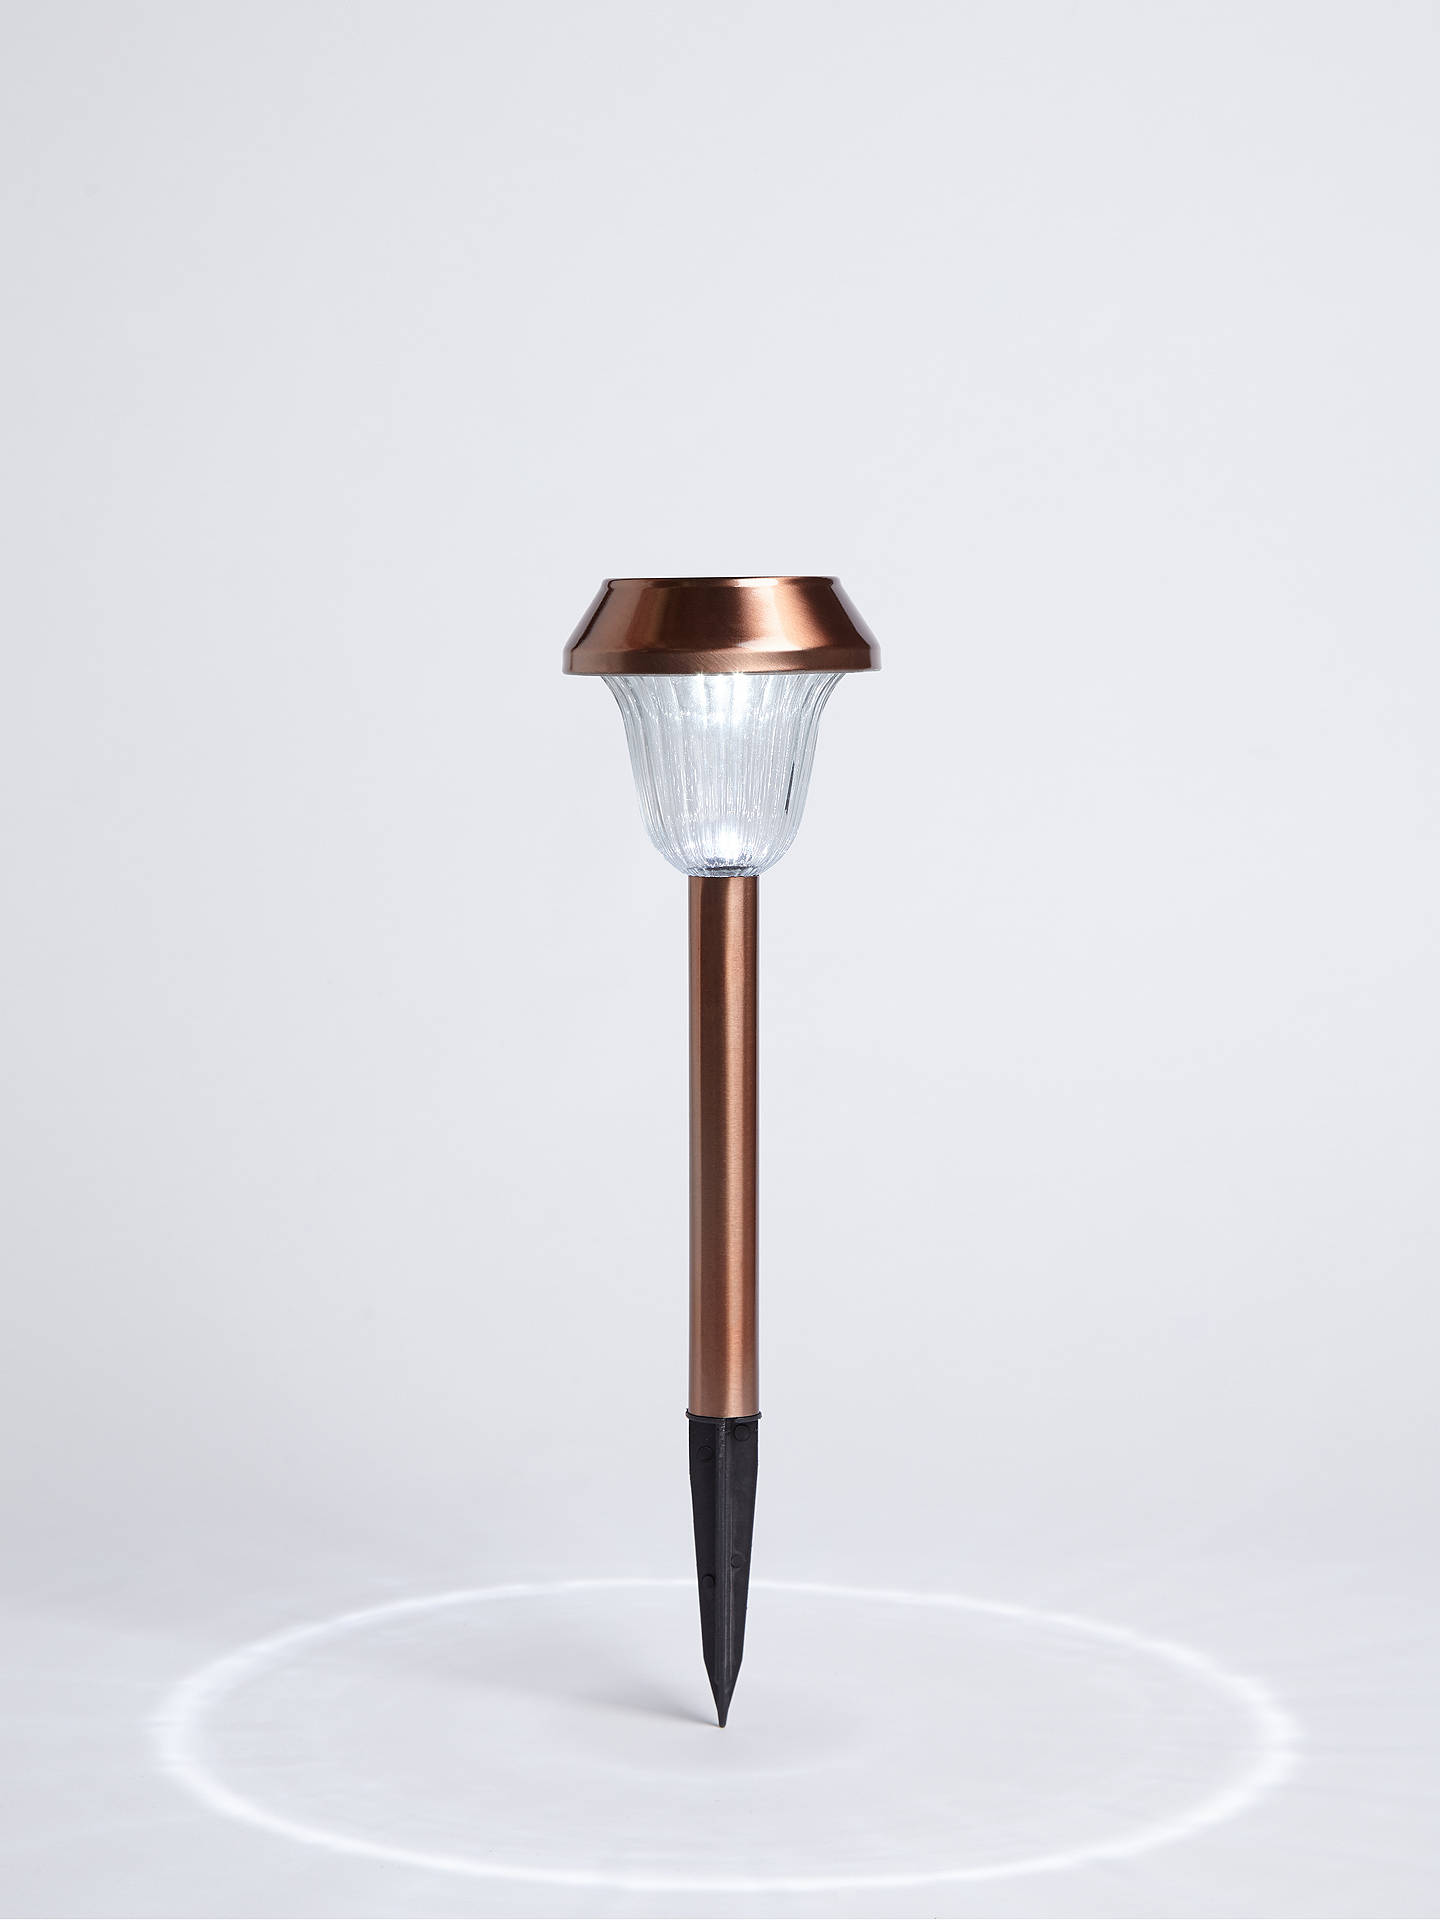 Buy John Lewis & Partners Solar LED Outdoor Stake Lights, Copper, Set of 2 Online at johnlewis.com